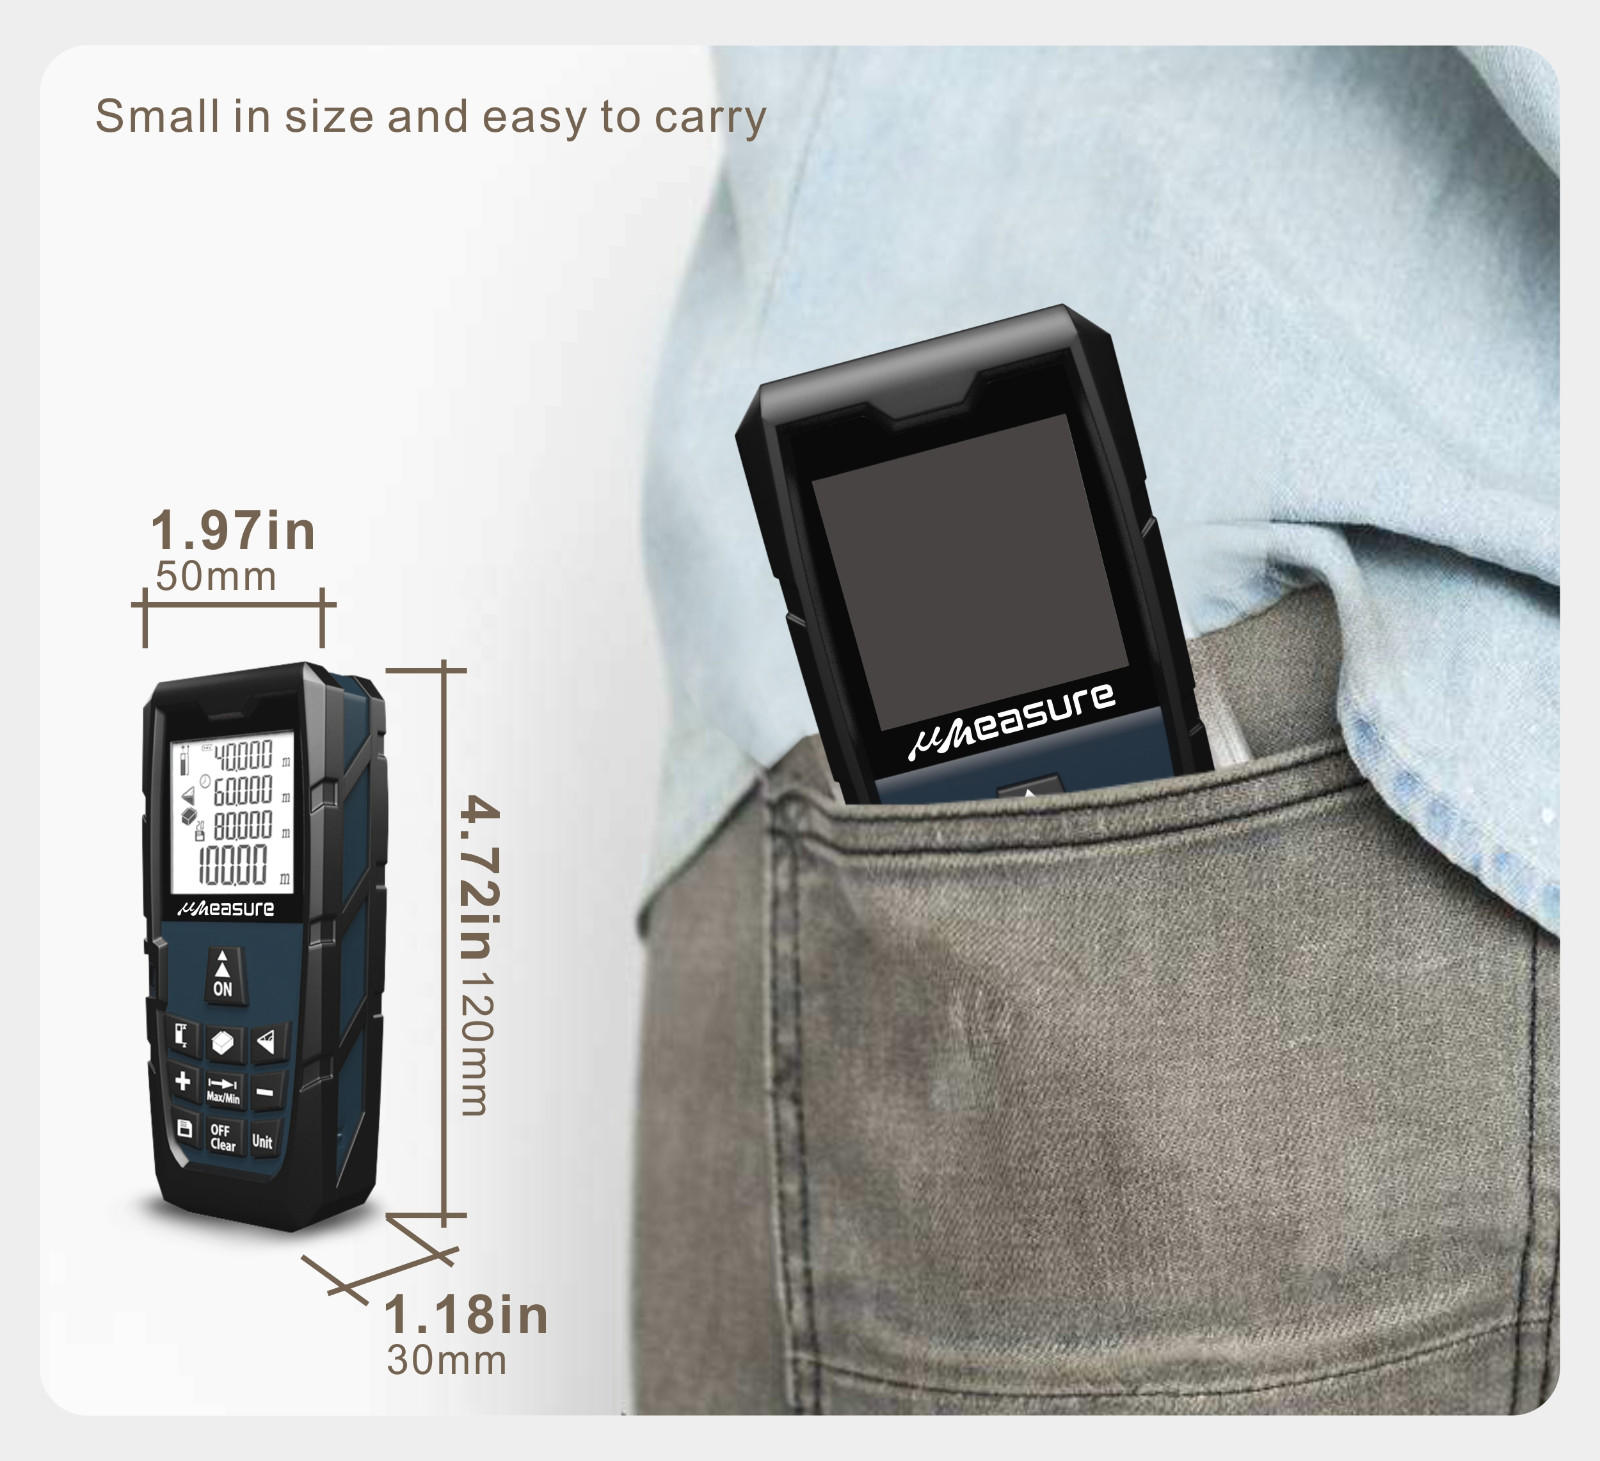 UMeasure touch distance measuring device handhold for worker